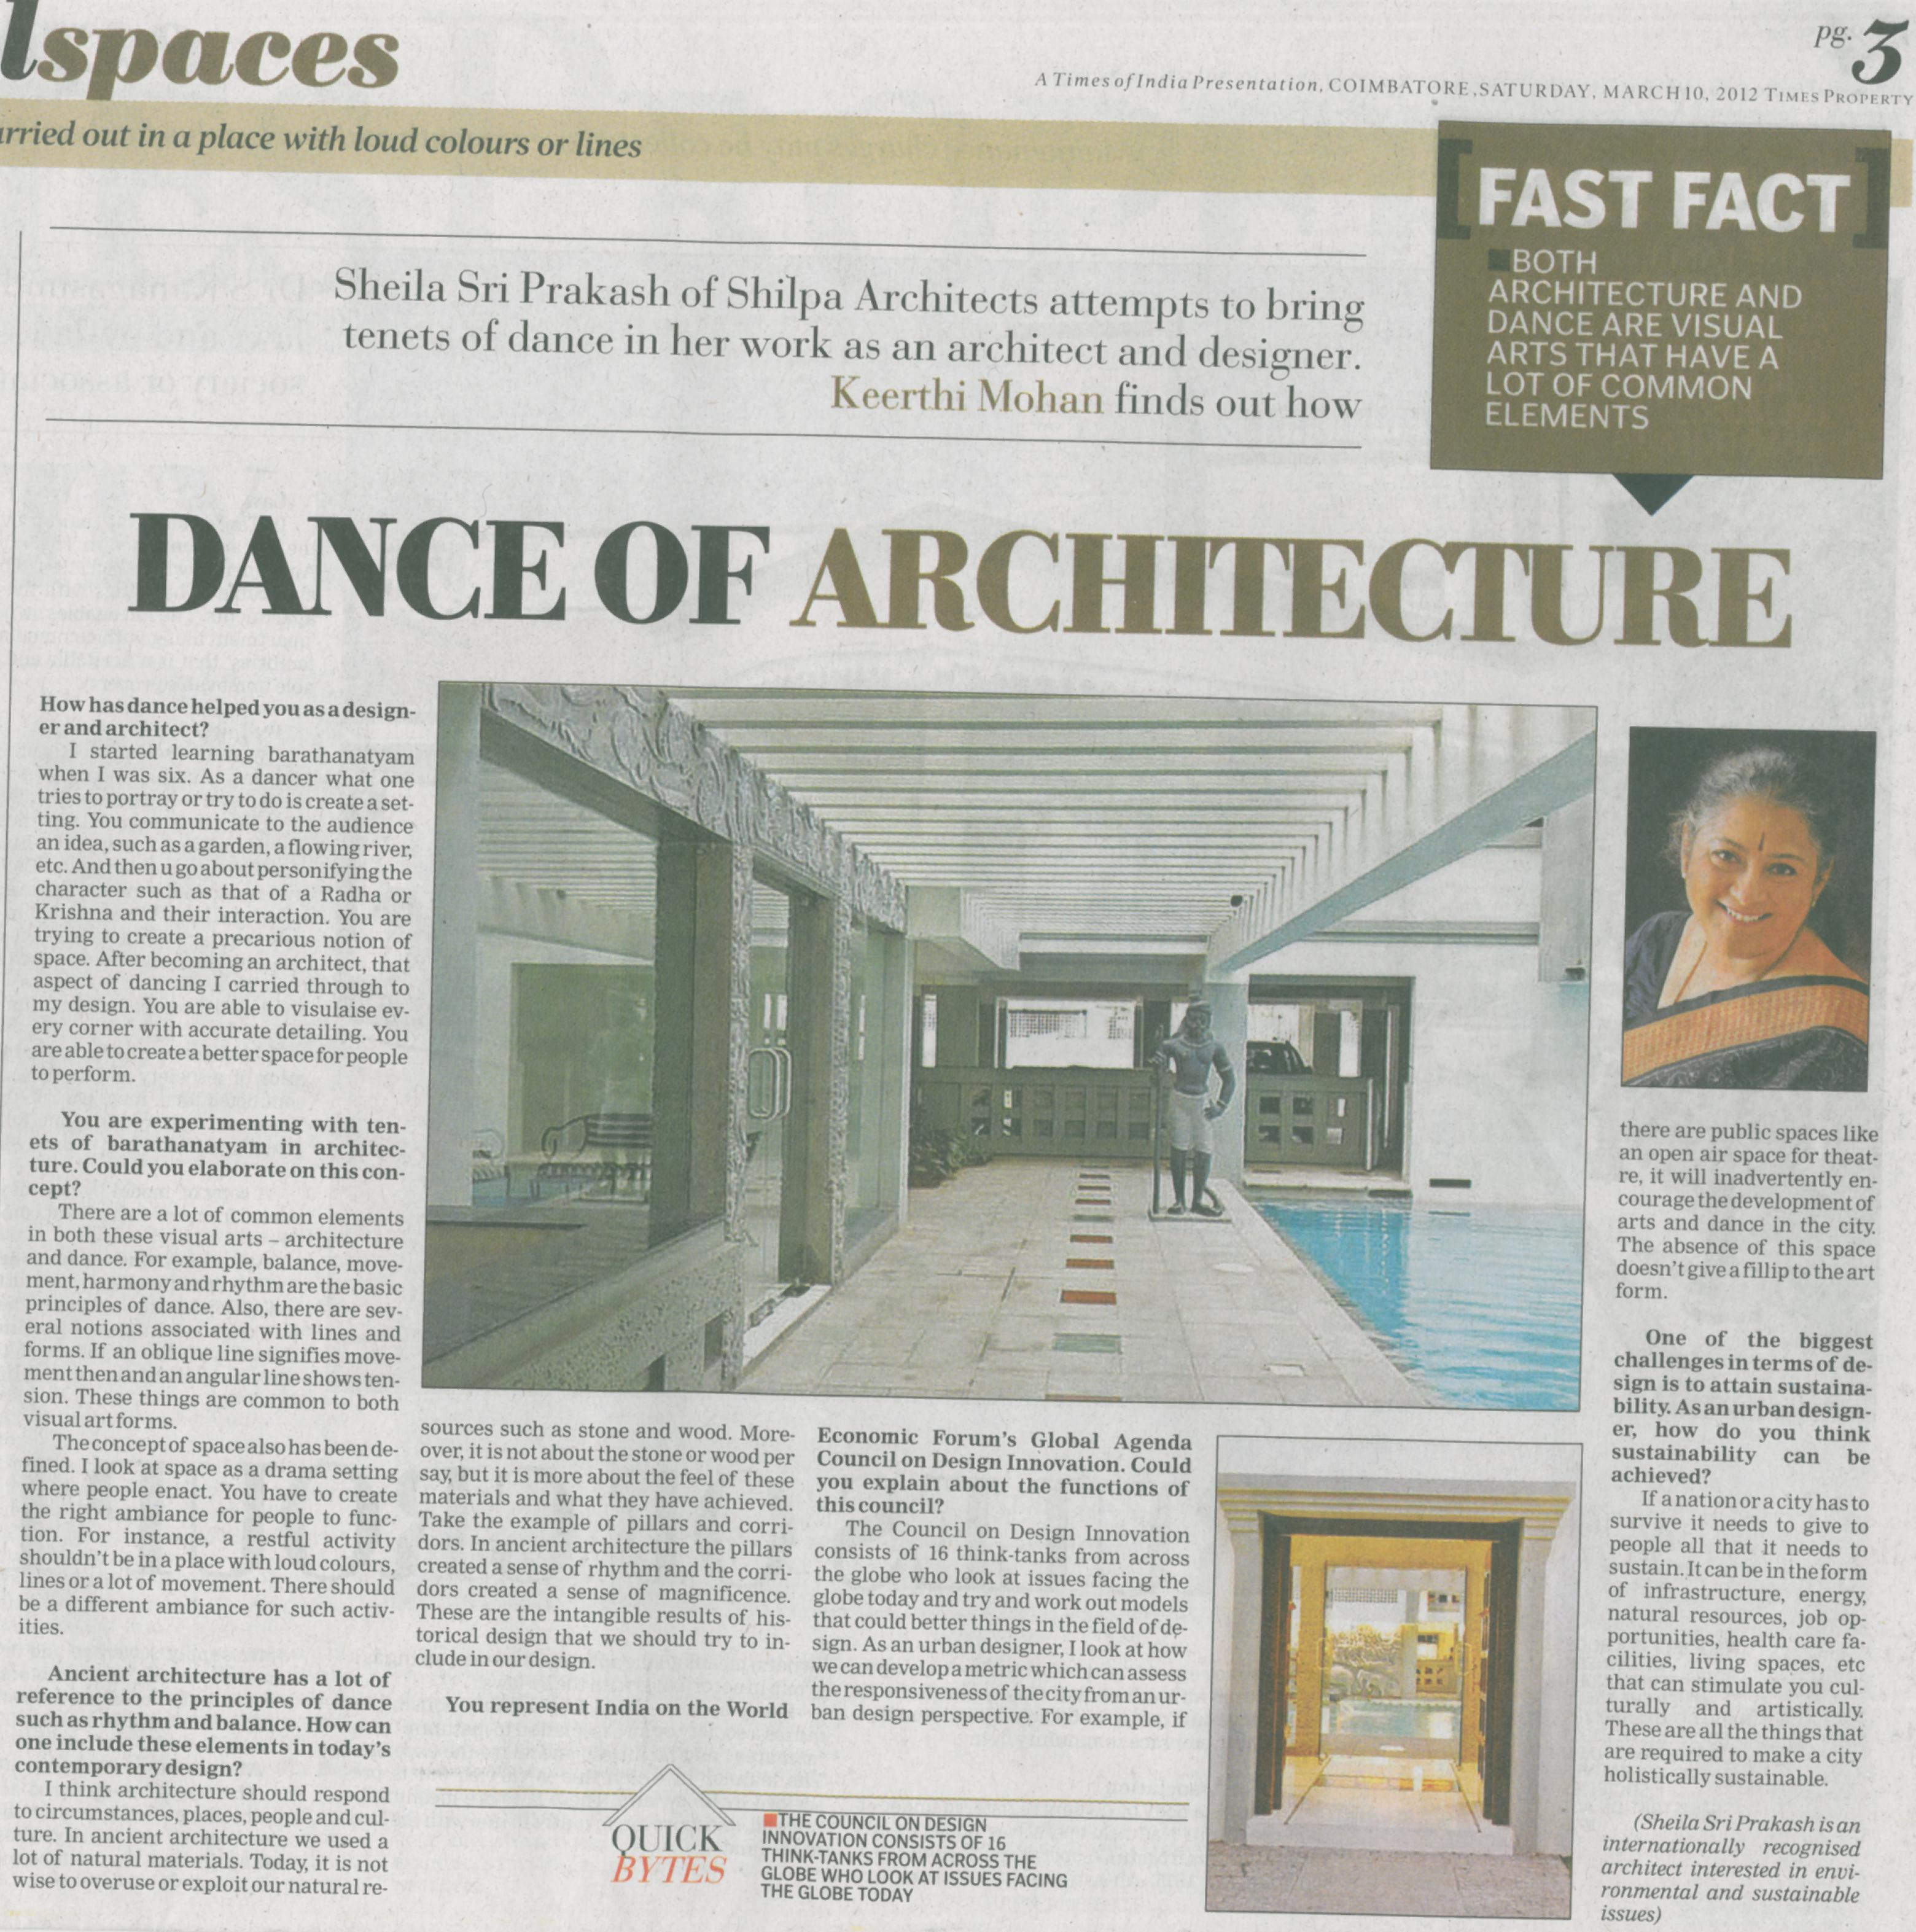 Times of India, 10 Mar 2012: DANCE OF ARCHITECTURE